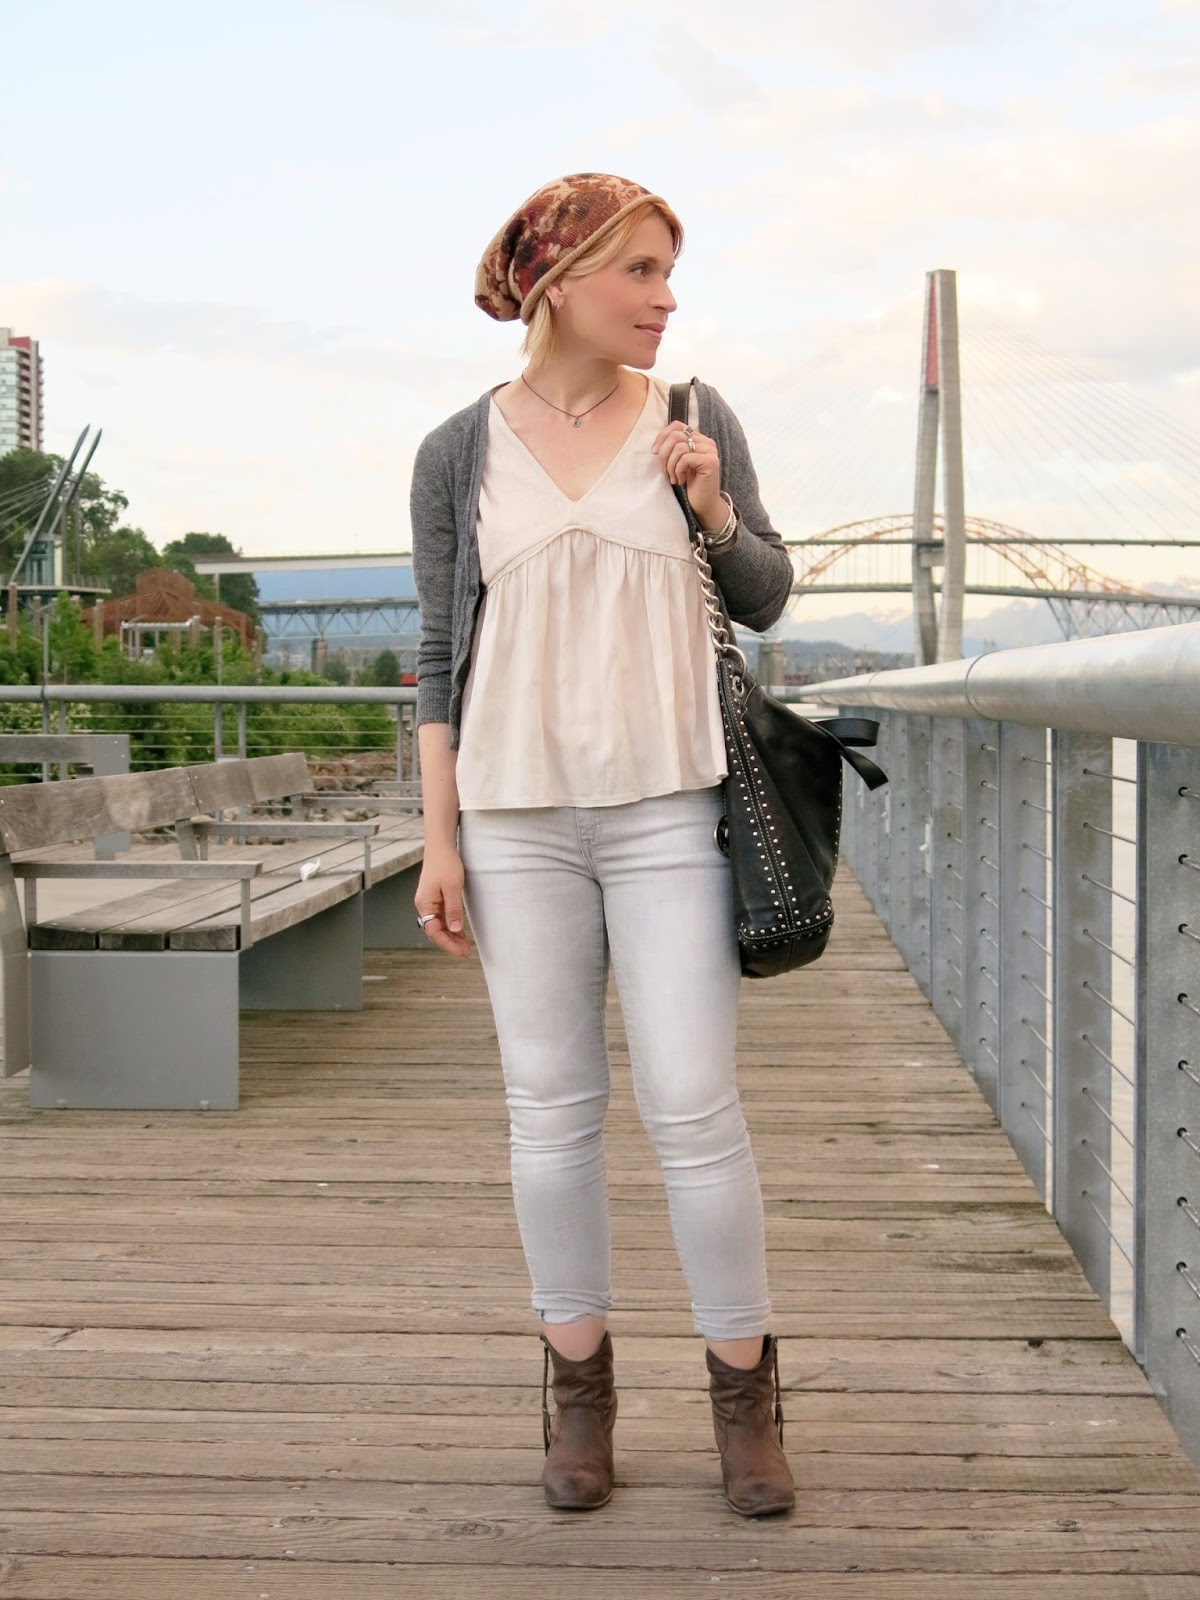 styling a drapey top with skinny jeans, western-style booties, shrunken cardigan, and floral beanie